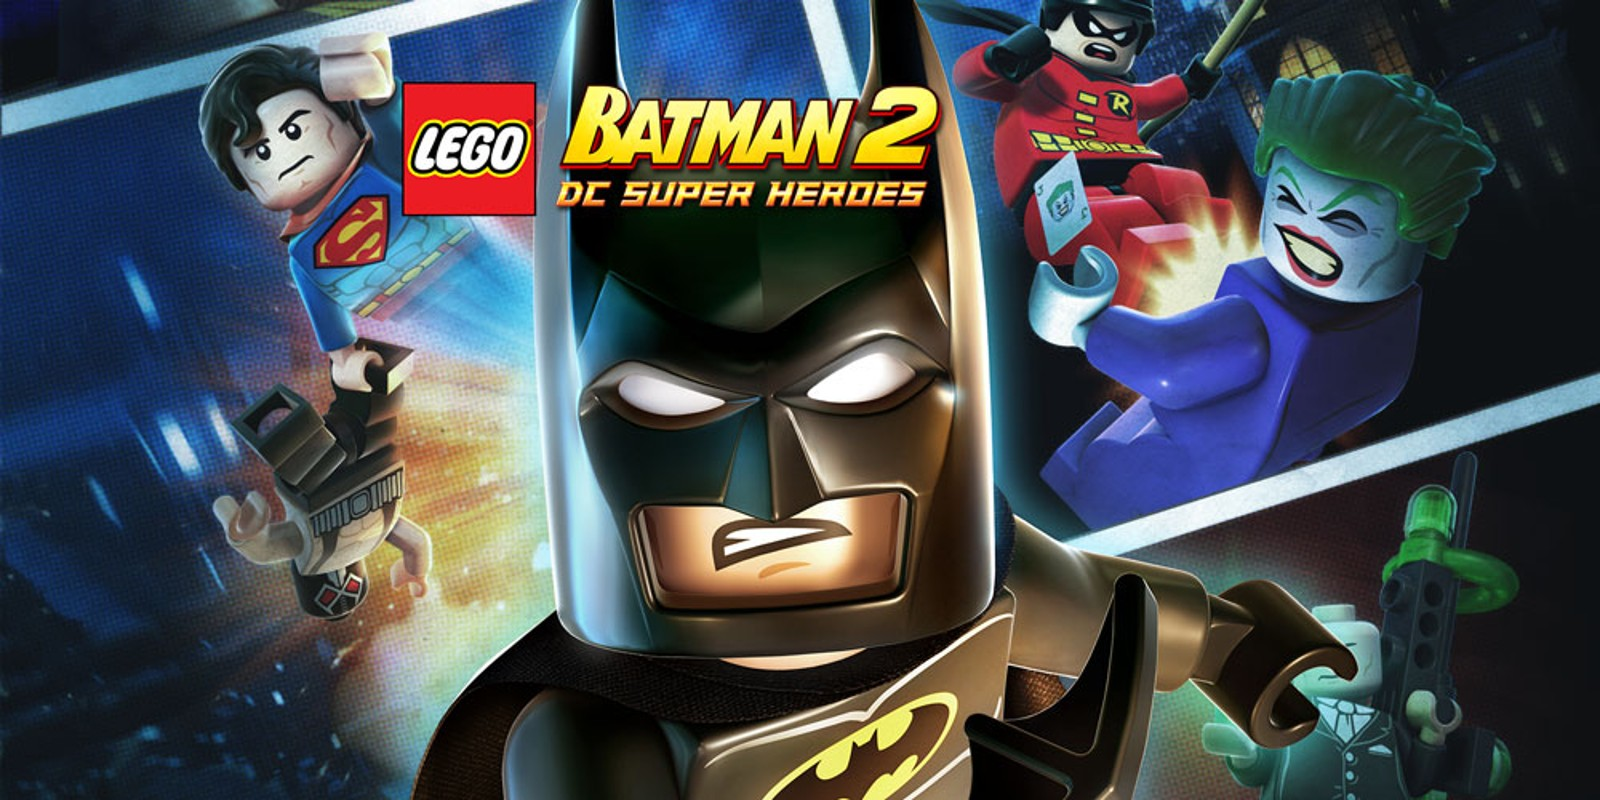 LEGO® BATMAN 2: DC Super Heroes